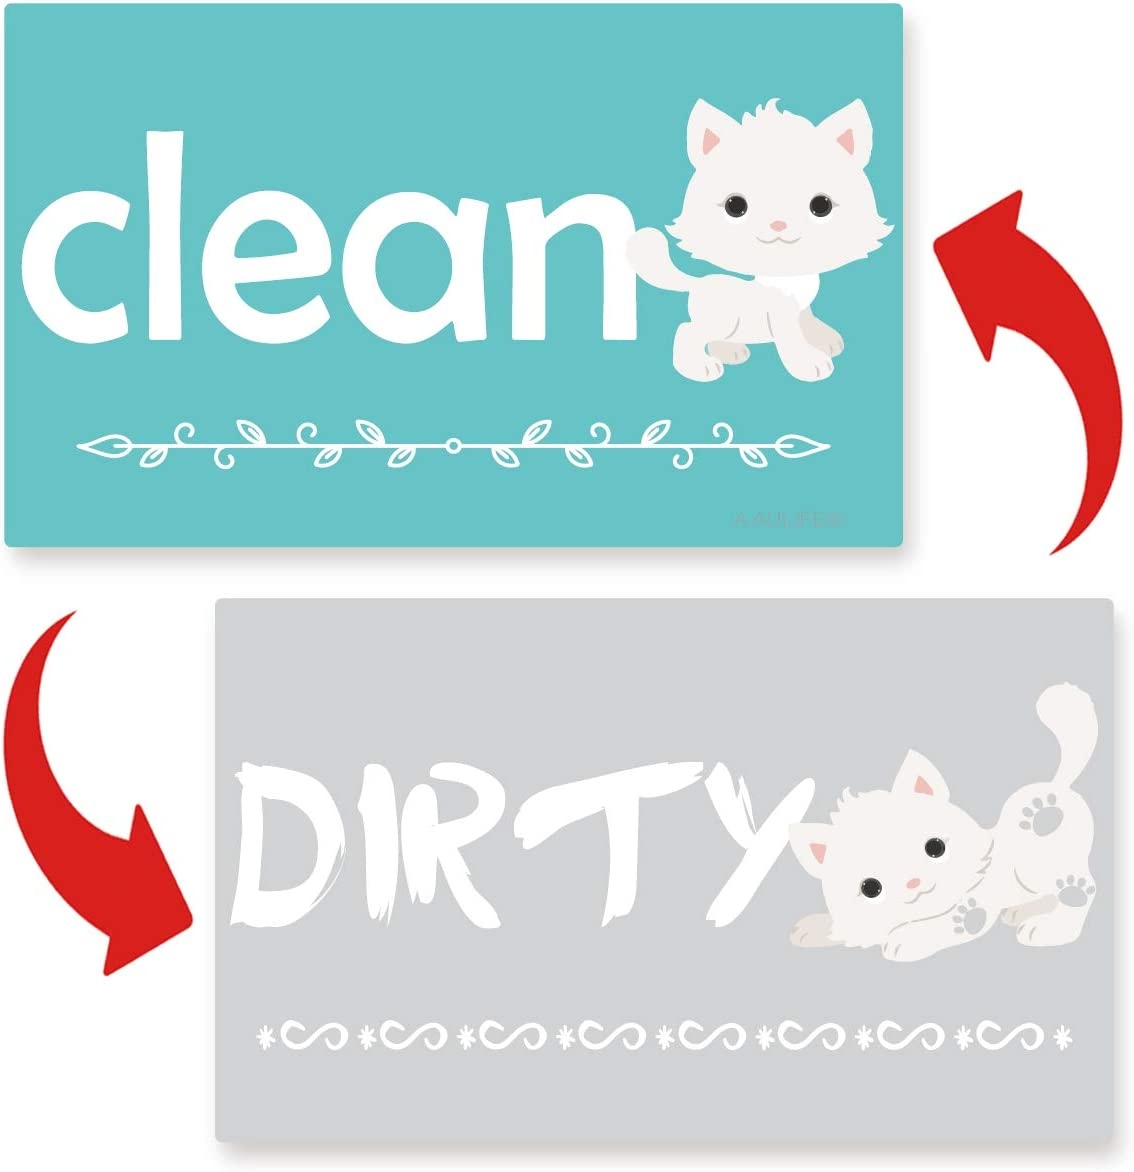 Clean Dirty Dishwasher Magnet Sign - Cute Dog Dishwasher Magnet Reversible Indicator Waterproof And Double Sided Flip With Bonus Metal Magnetic Plate, Funny Sign Perfect For Home Kitchen Dishwasher